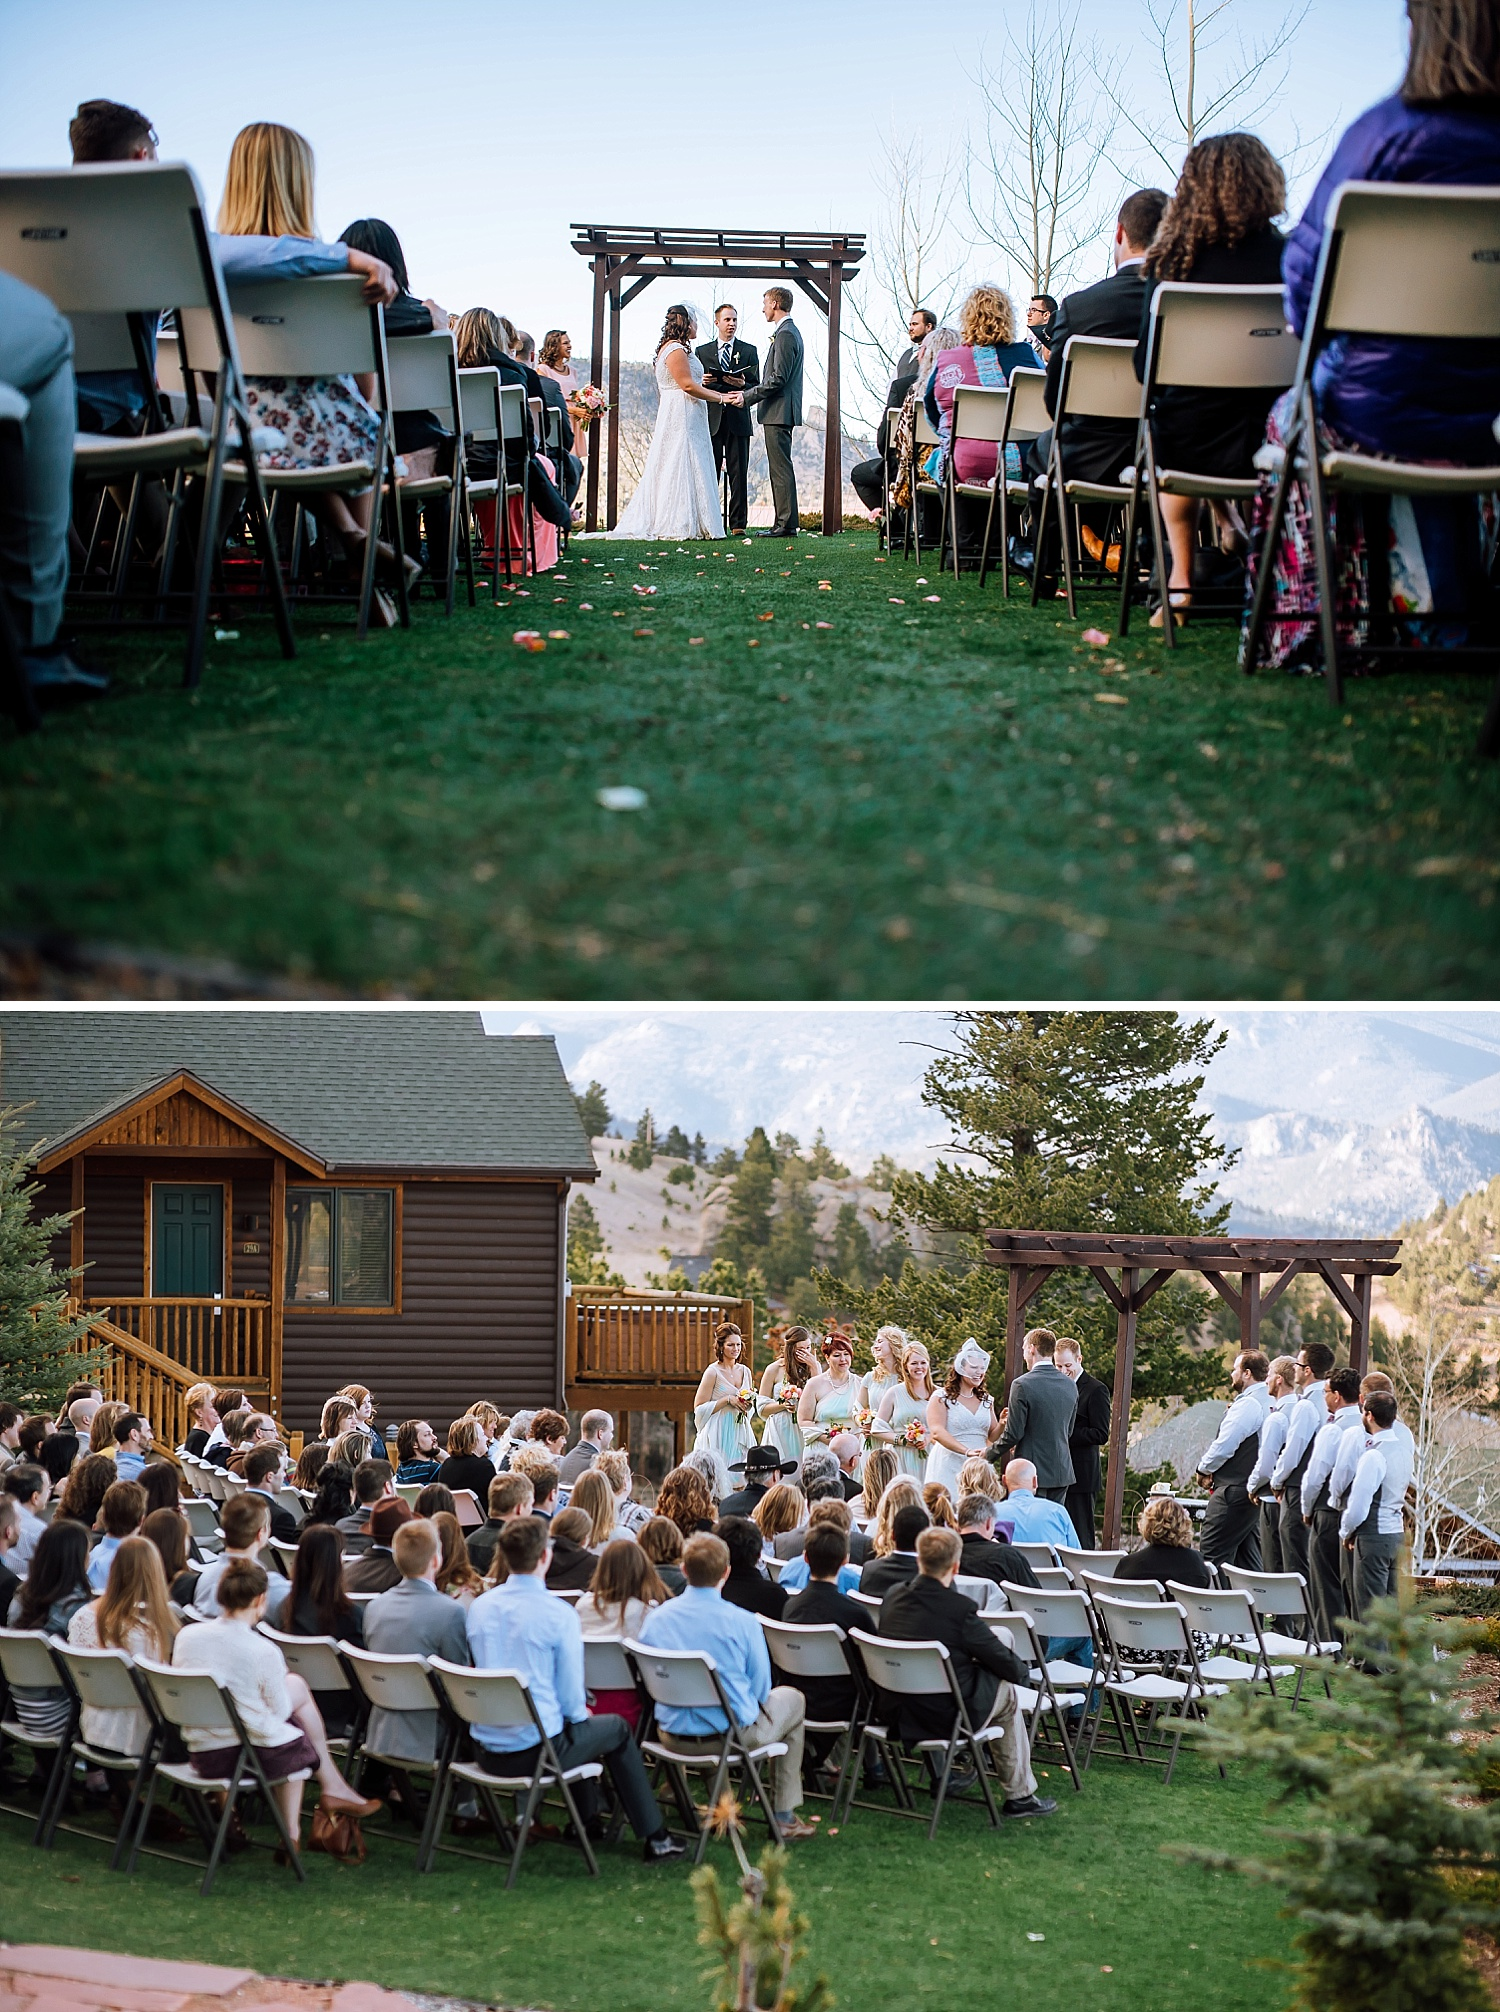 Mary's Lake Lodge is the PERFECT venue for a mountain wedding! I love this! Colorado is so beautiful.Photo by Maddie Mae Photography